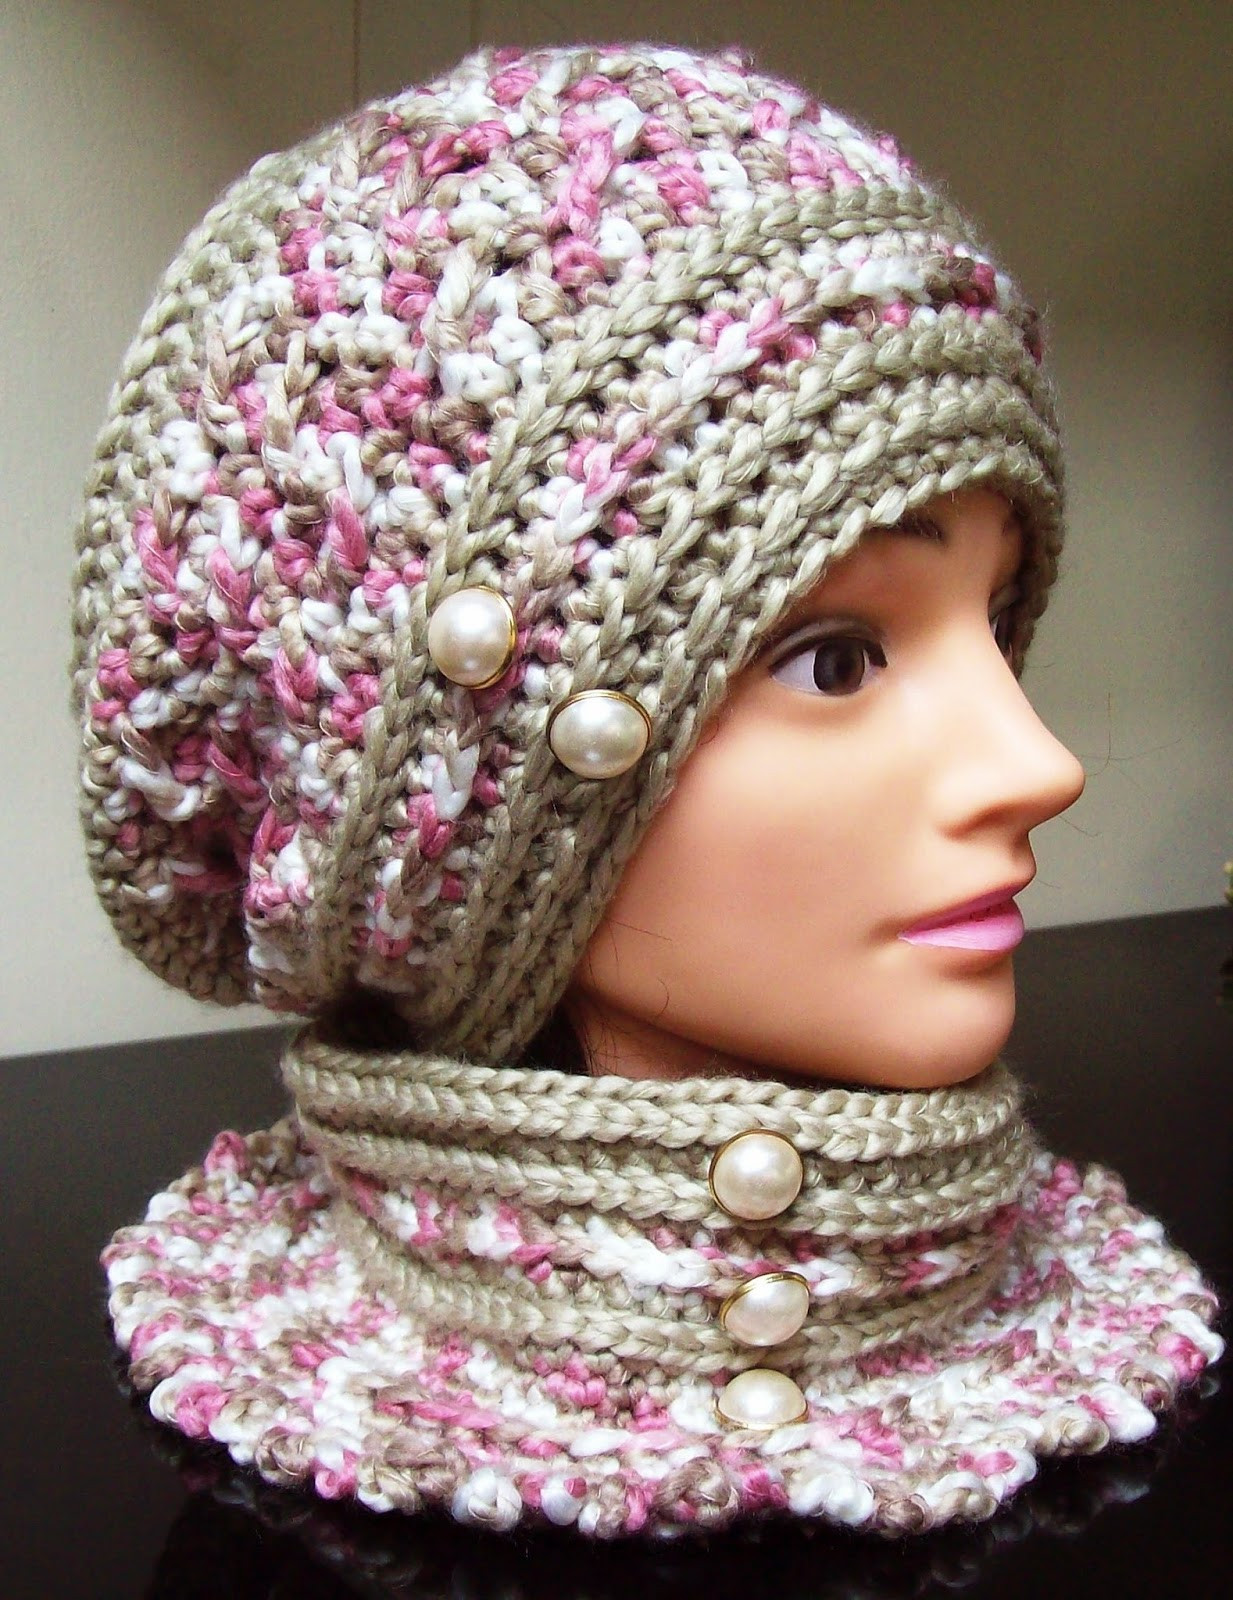 Beautiful Free Crochet Patterns by Cats Rockin Crochet Crochet Hat and Scarf Of Superb 50 Pics Crochet Hat and Scarf